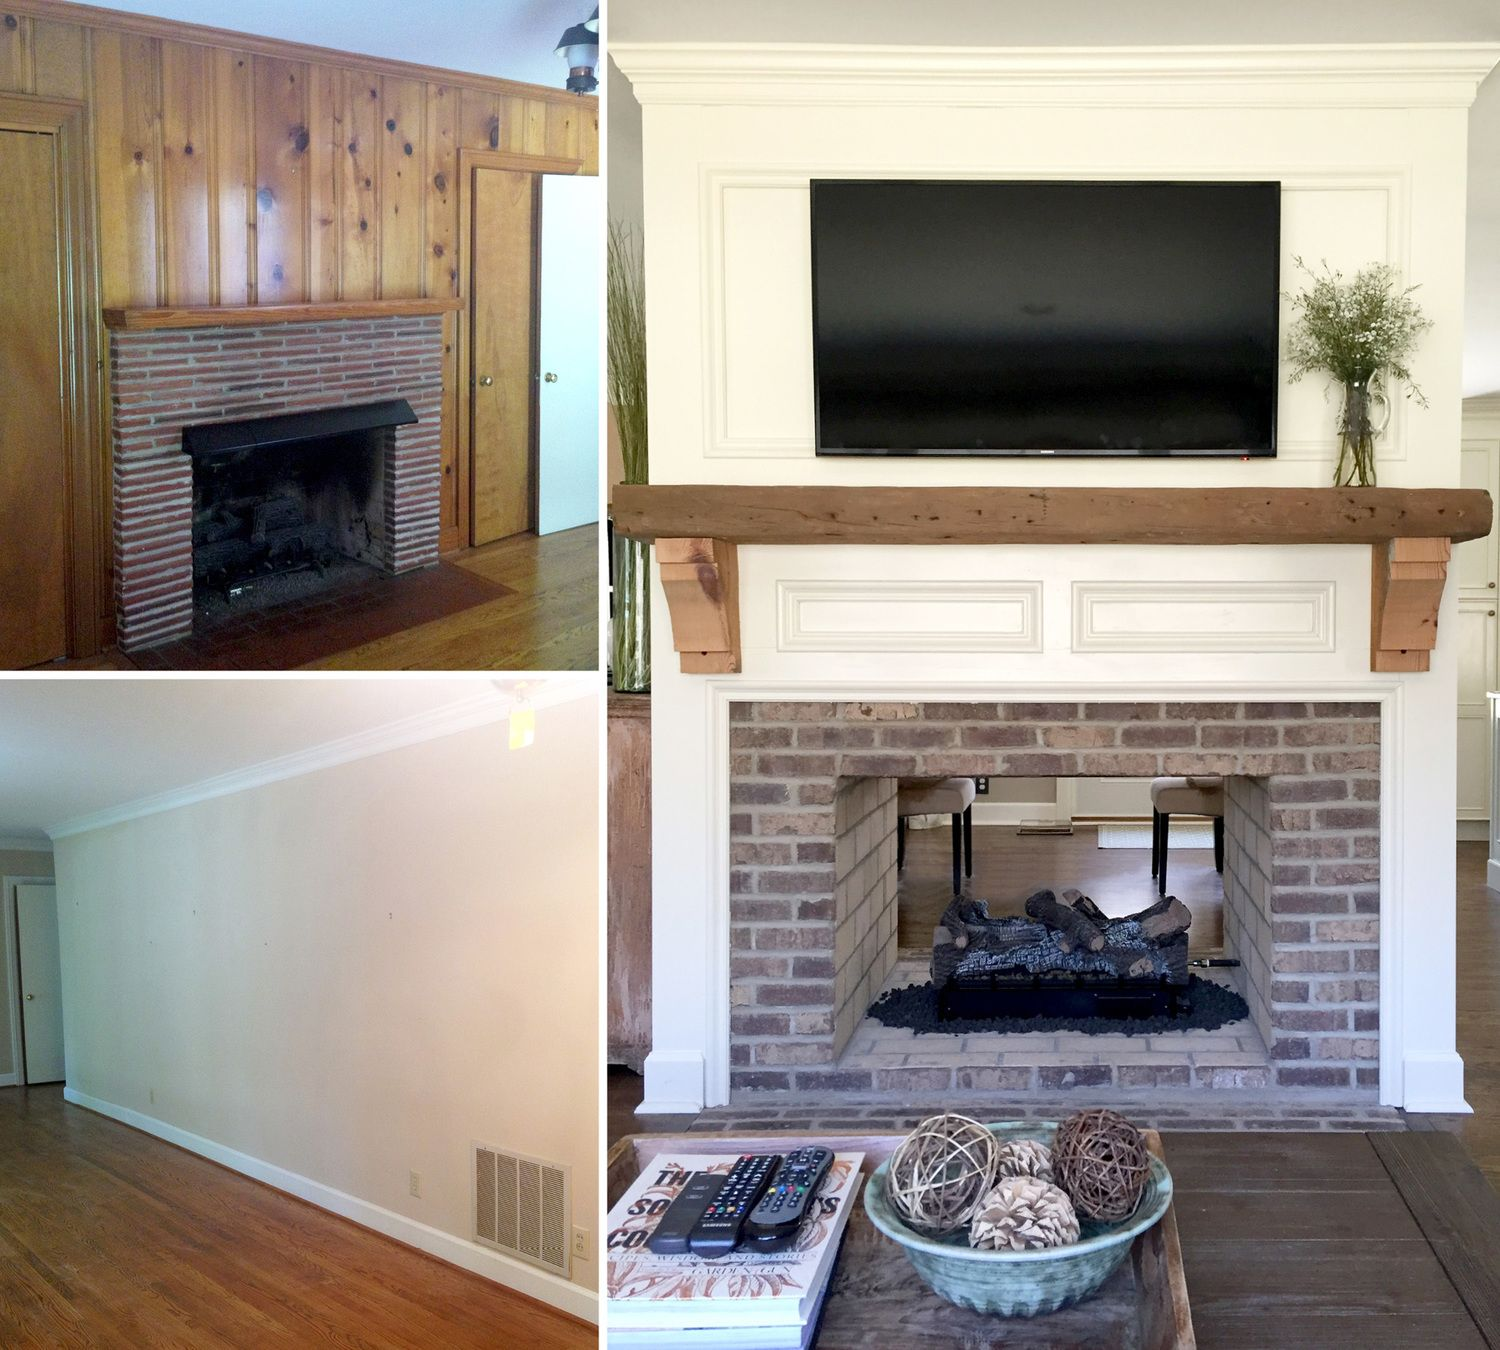 Double Sided Electric Fireplace Elegant Fireplace Renovation Converting A Single Sided Fireplace to